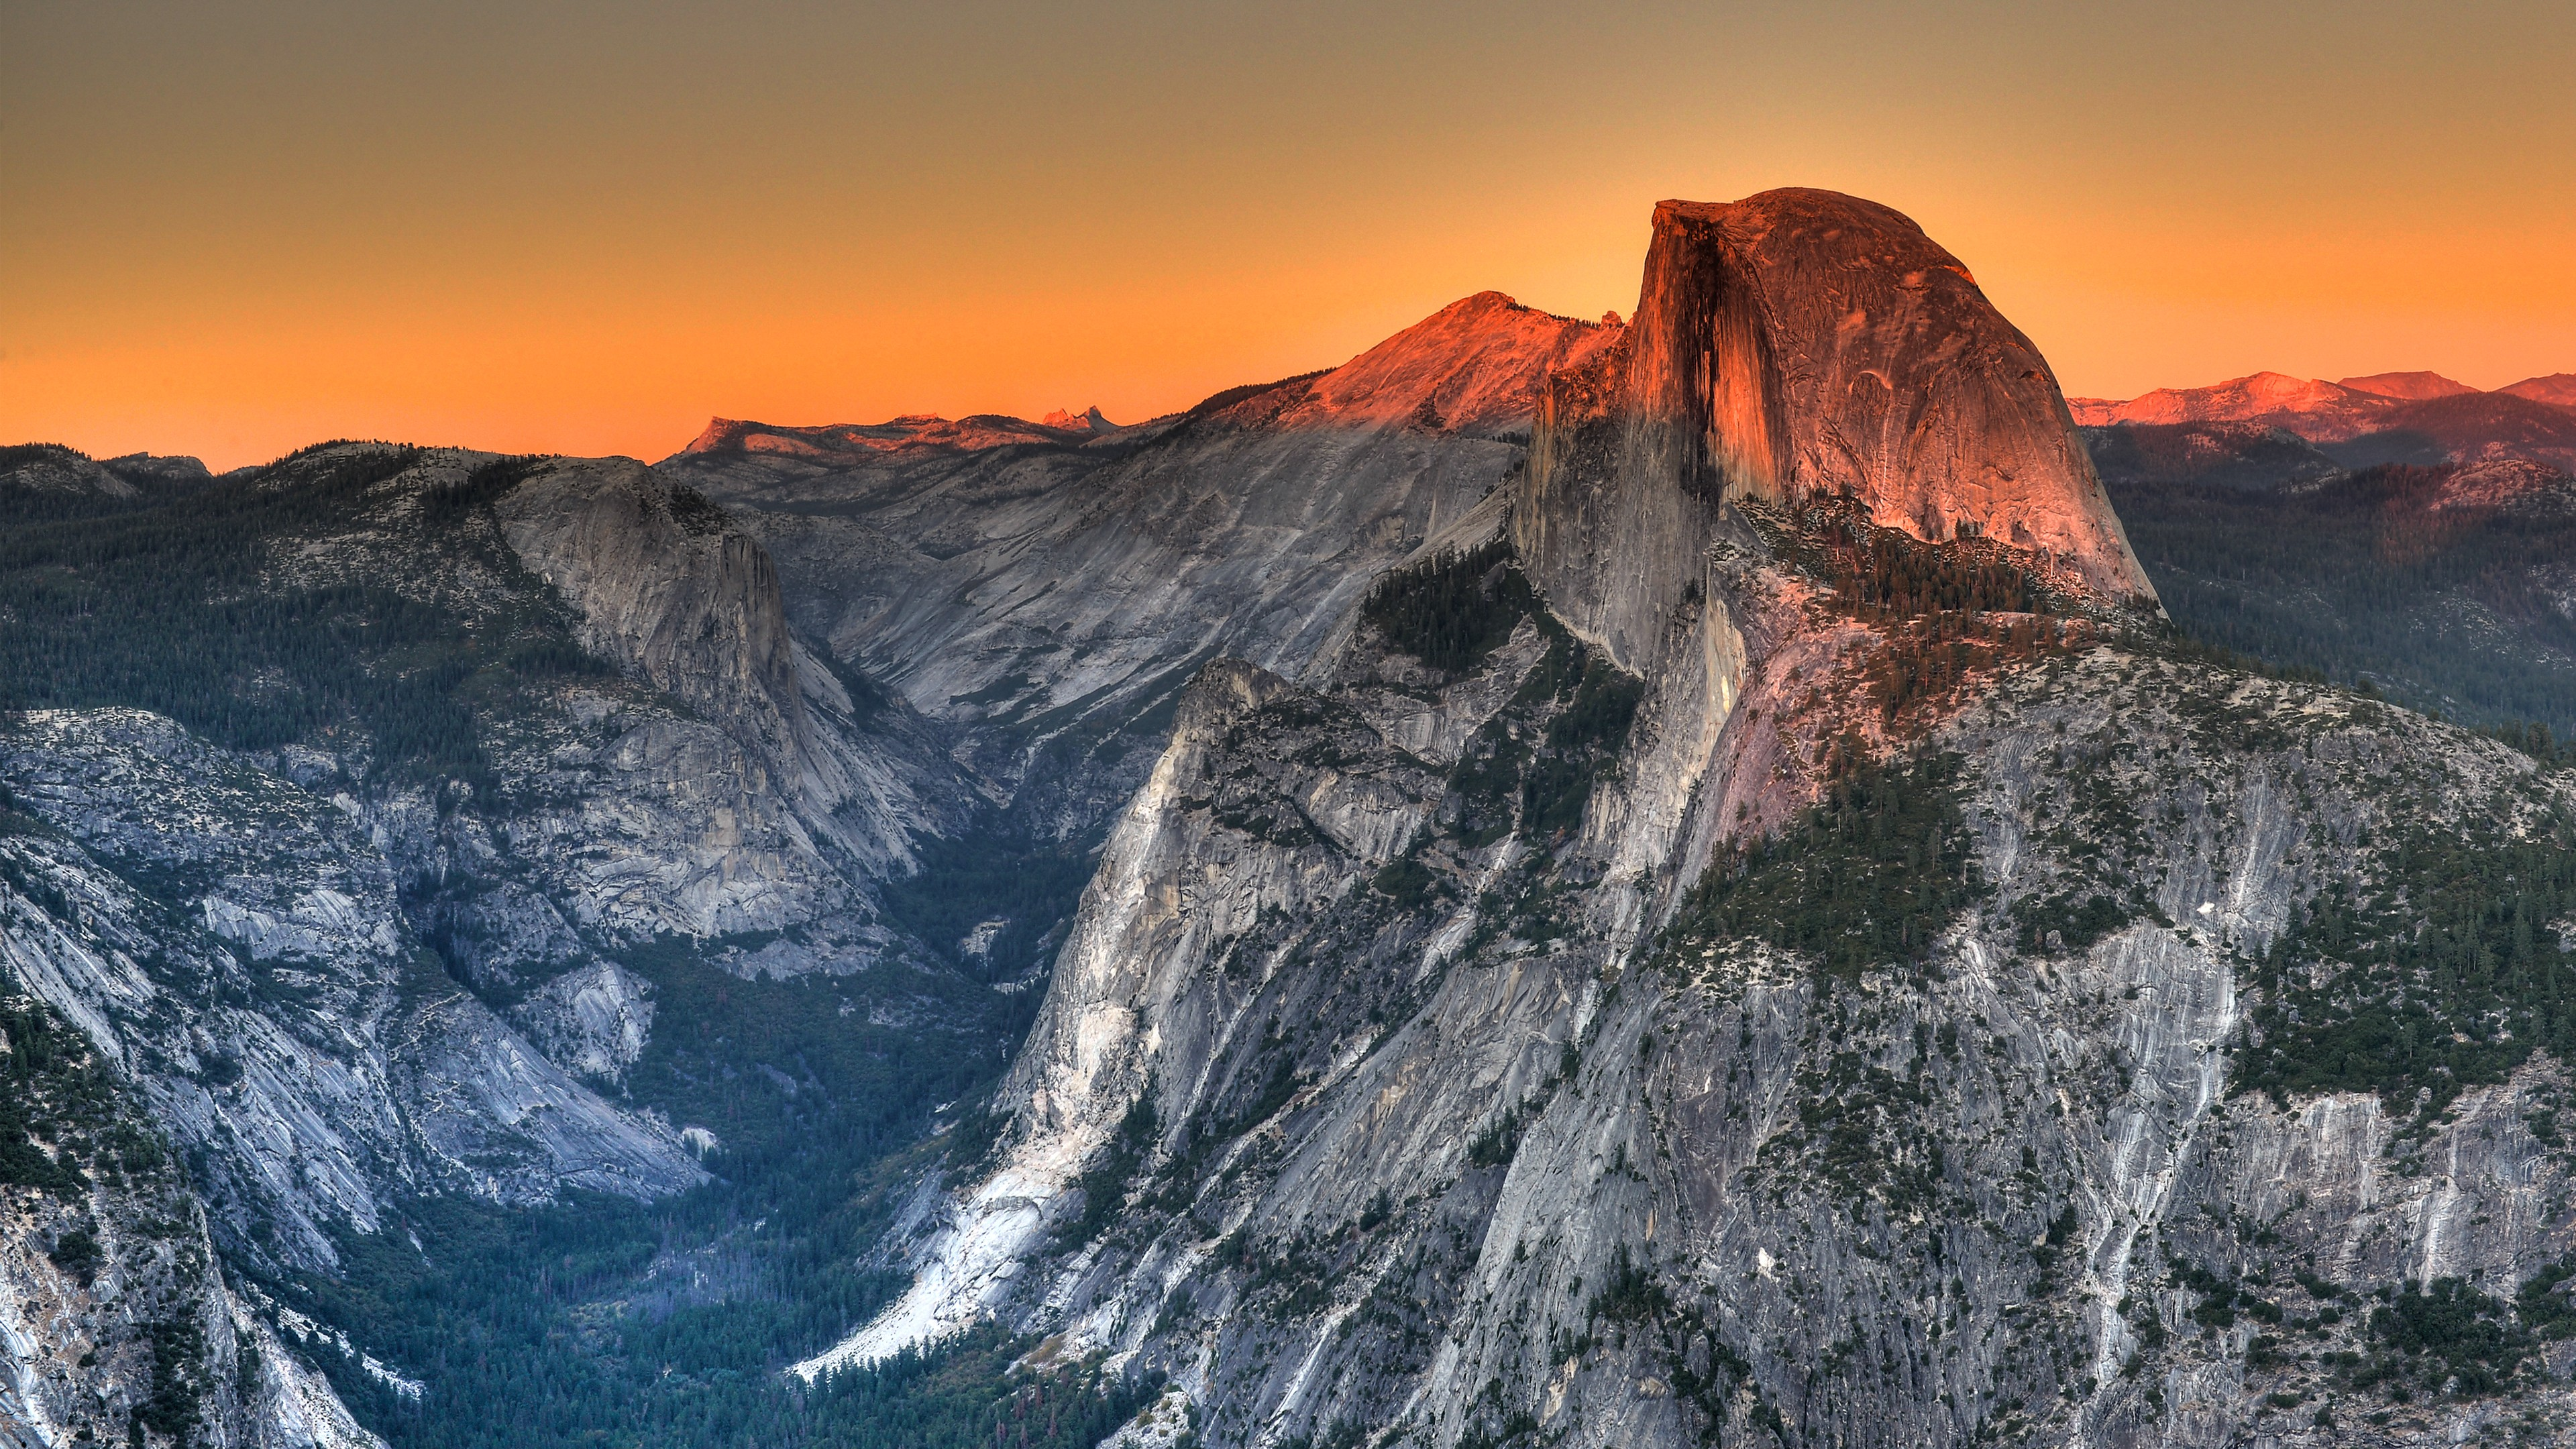 Yosemite National Park wallpaper 088